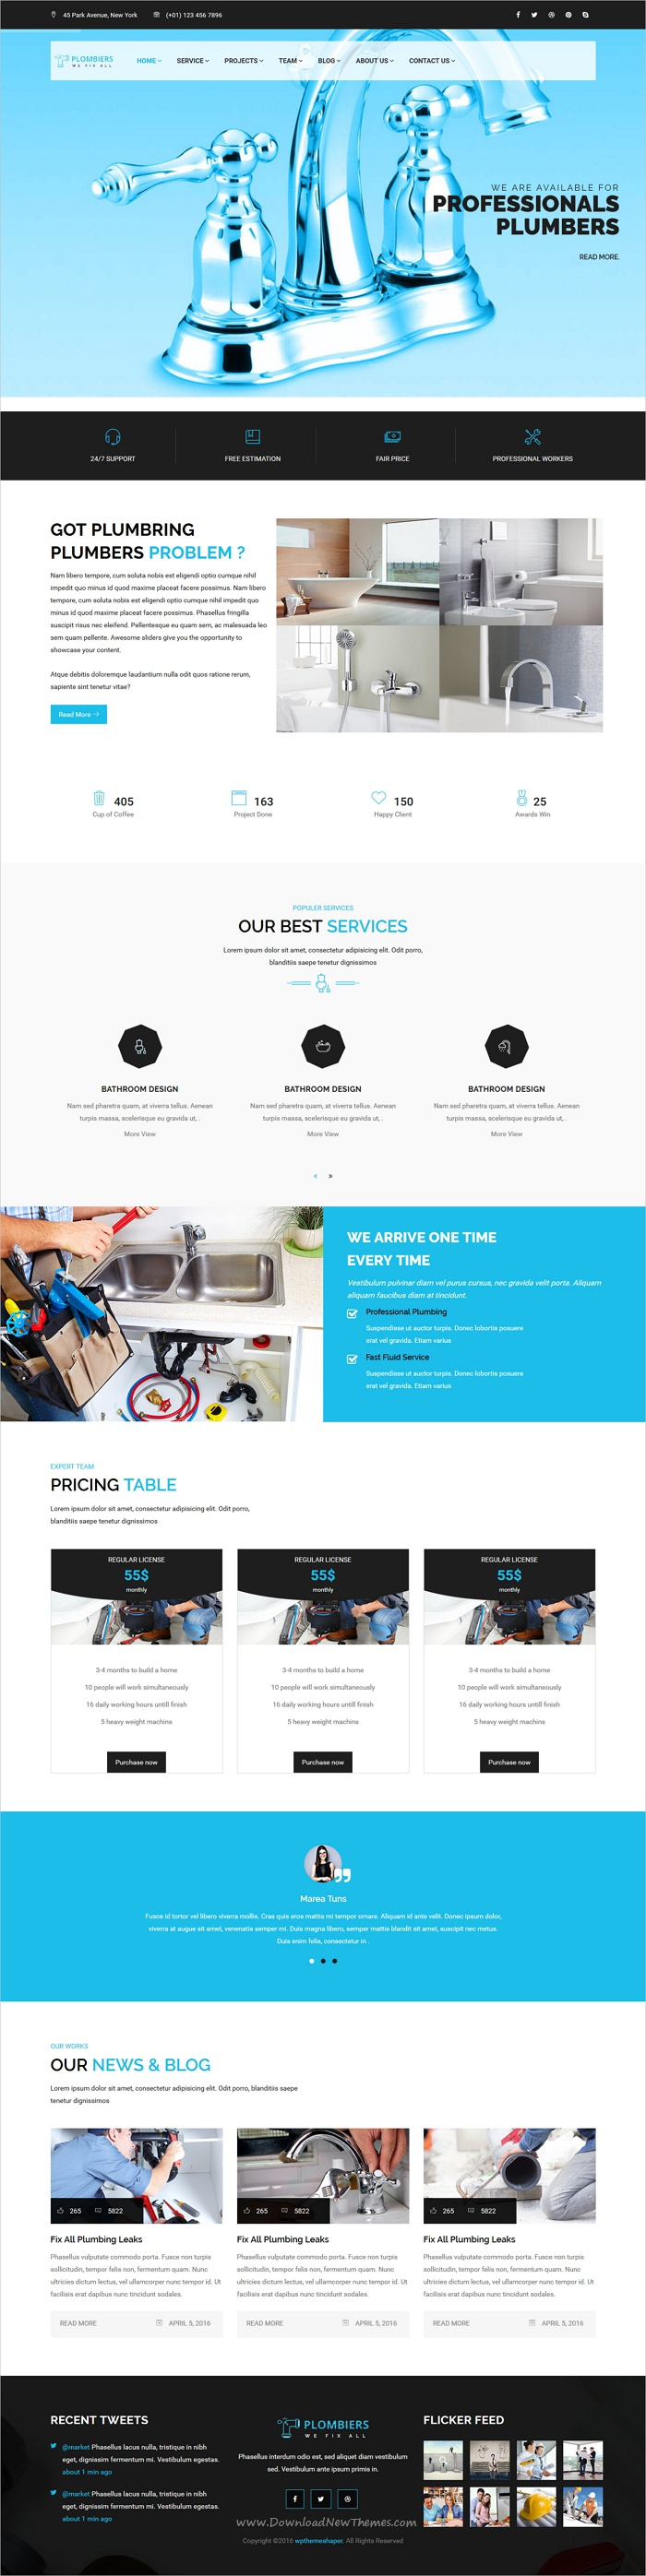 Plombiers Is A Wonderful 3in1 Responsive Html Bootstrap Template For Plumber Maintenance And Repair Services Company Websites Download Now Https Themefor